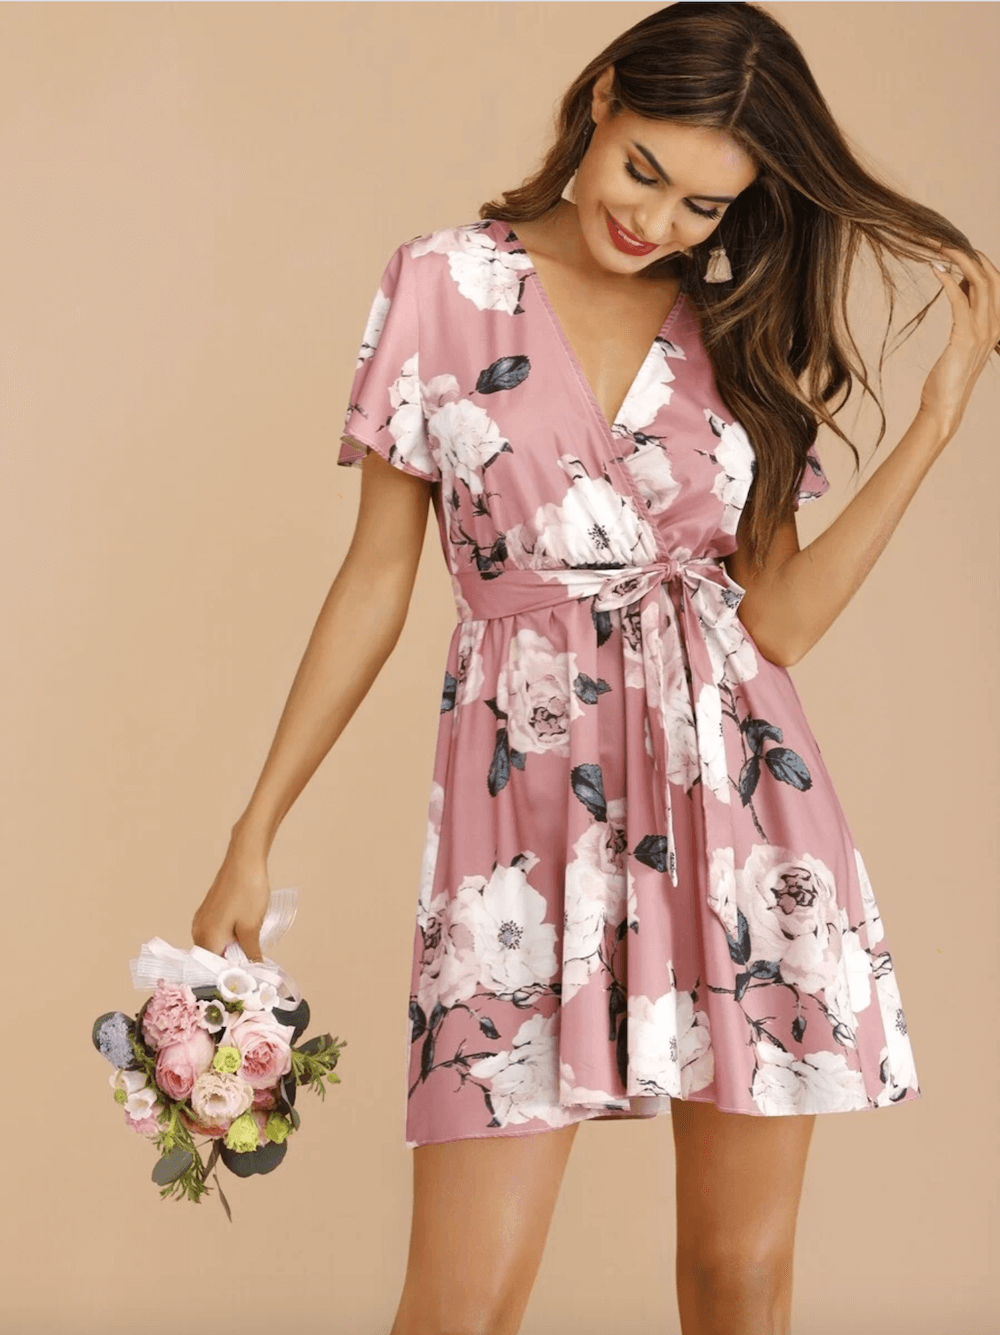 Summer Outfits Sundresses Beach Casual Pink Floral Print Dress Shein